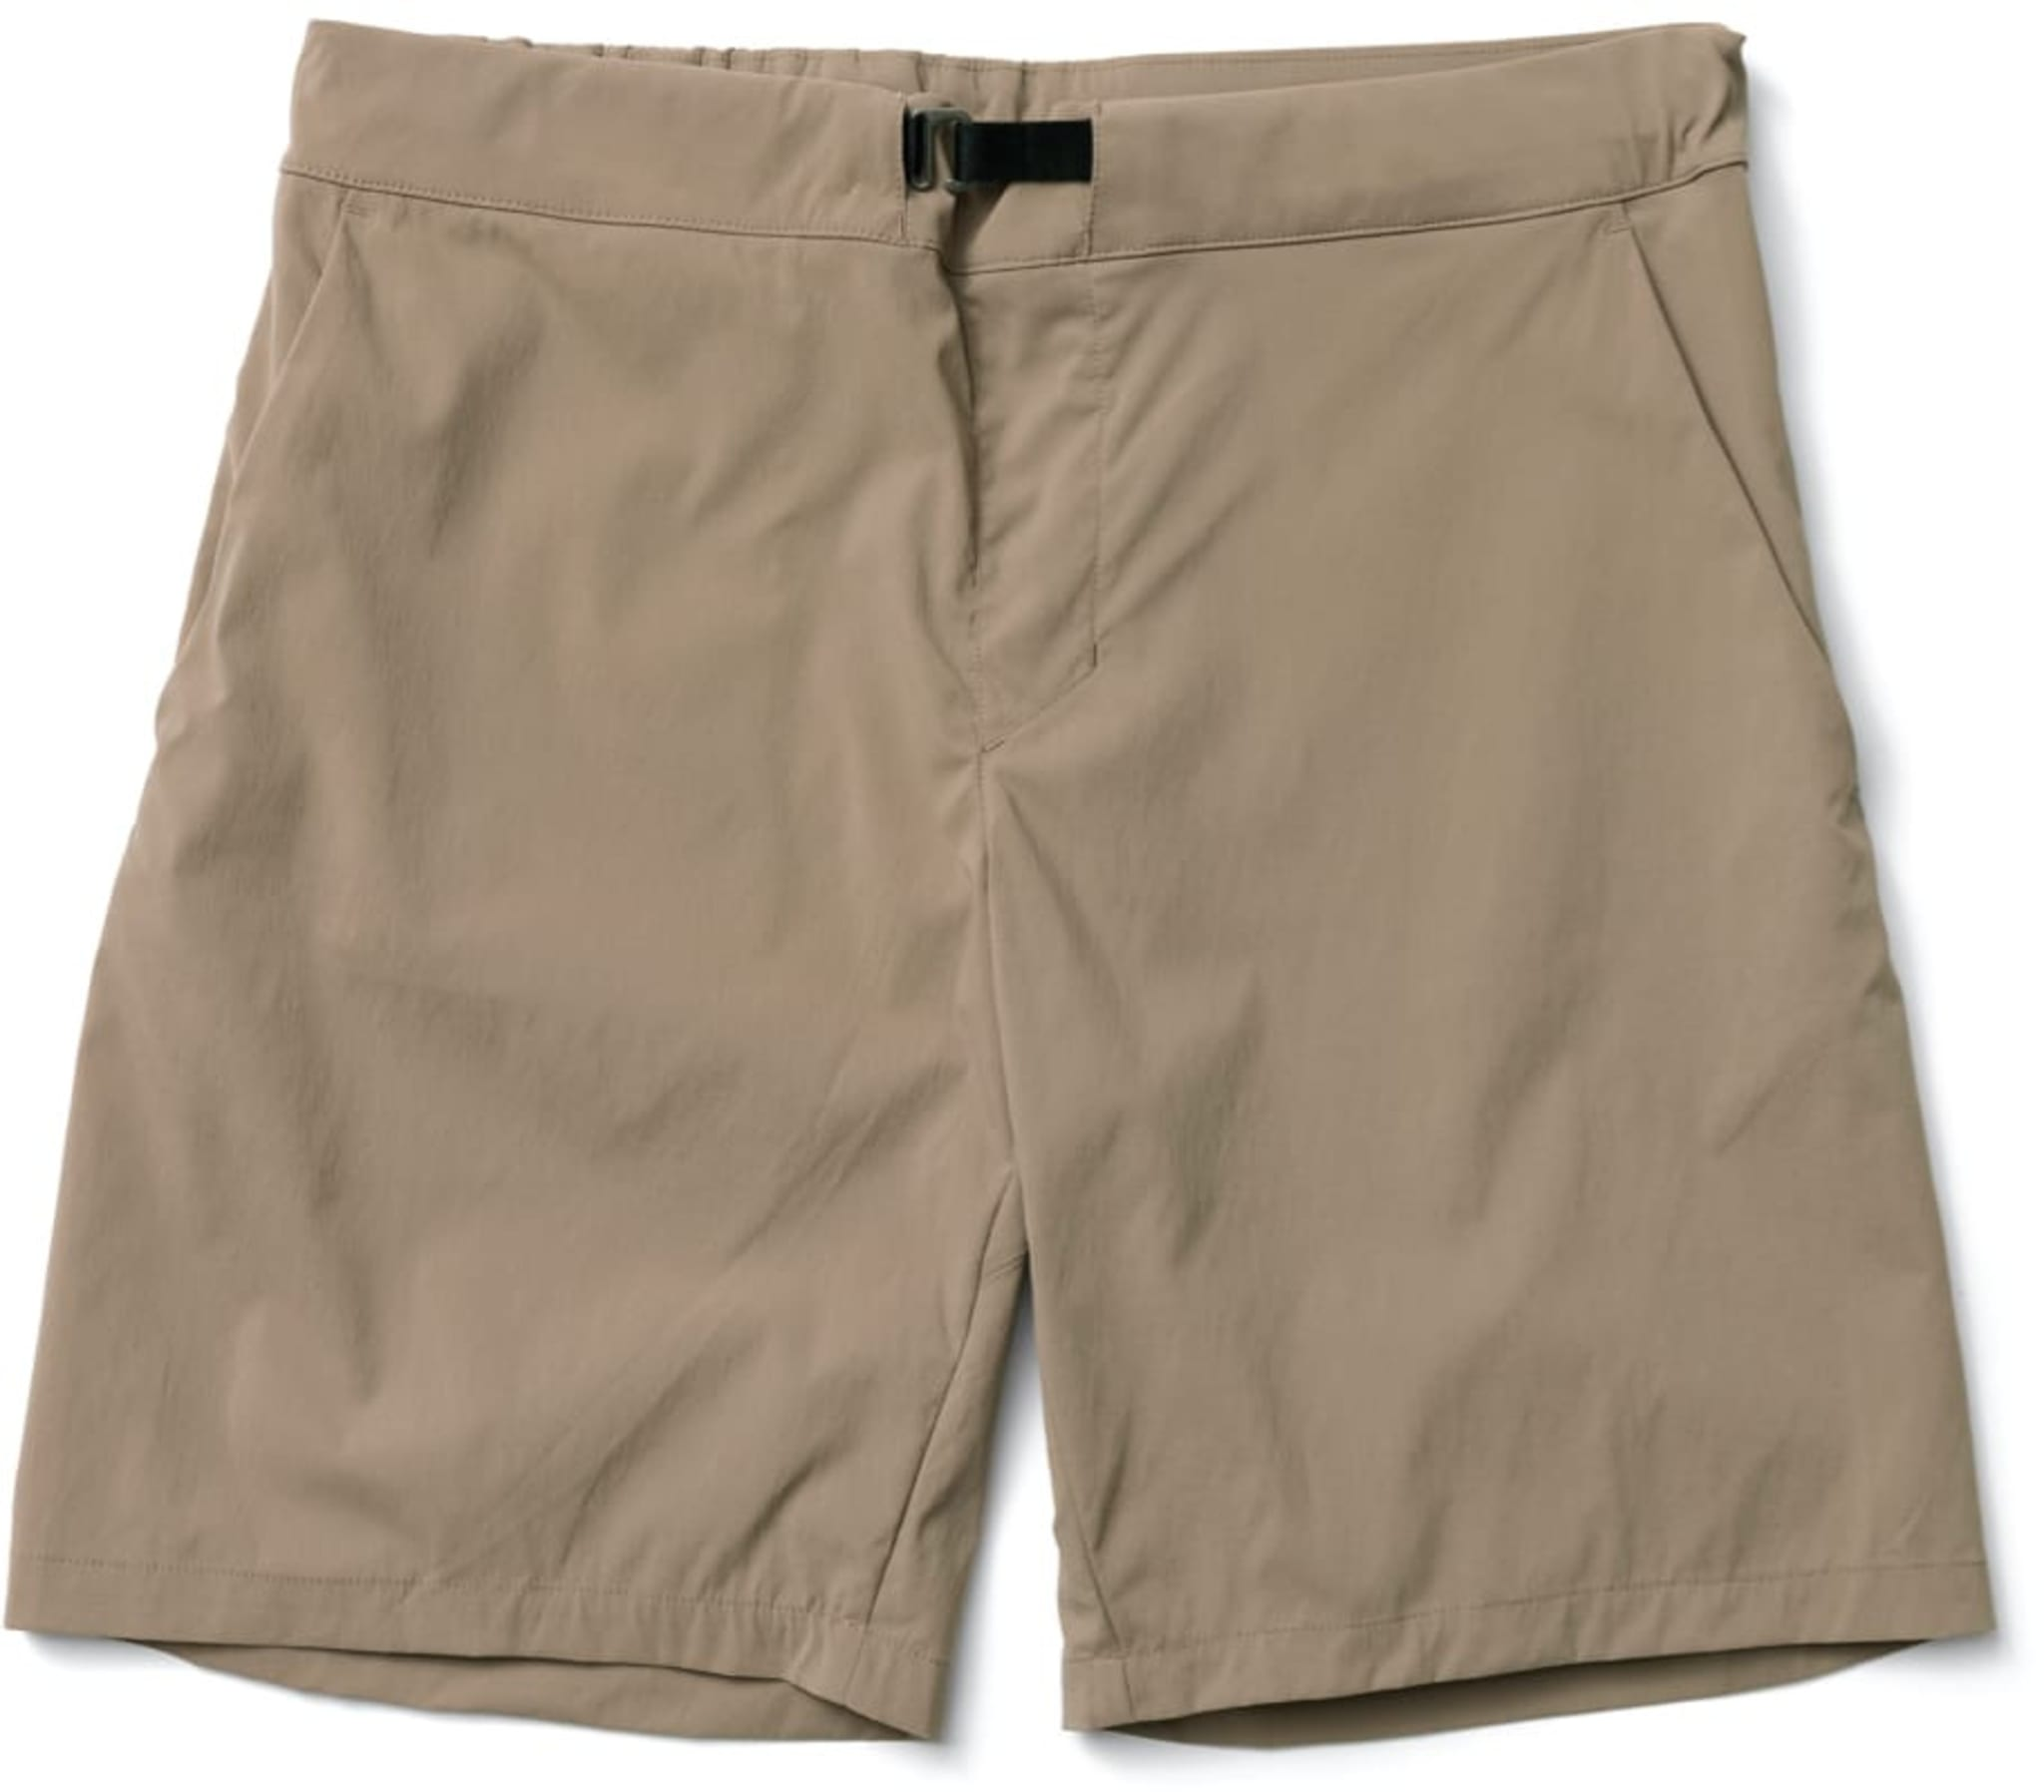 Superlett og stretchy shorts til sommereventyr